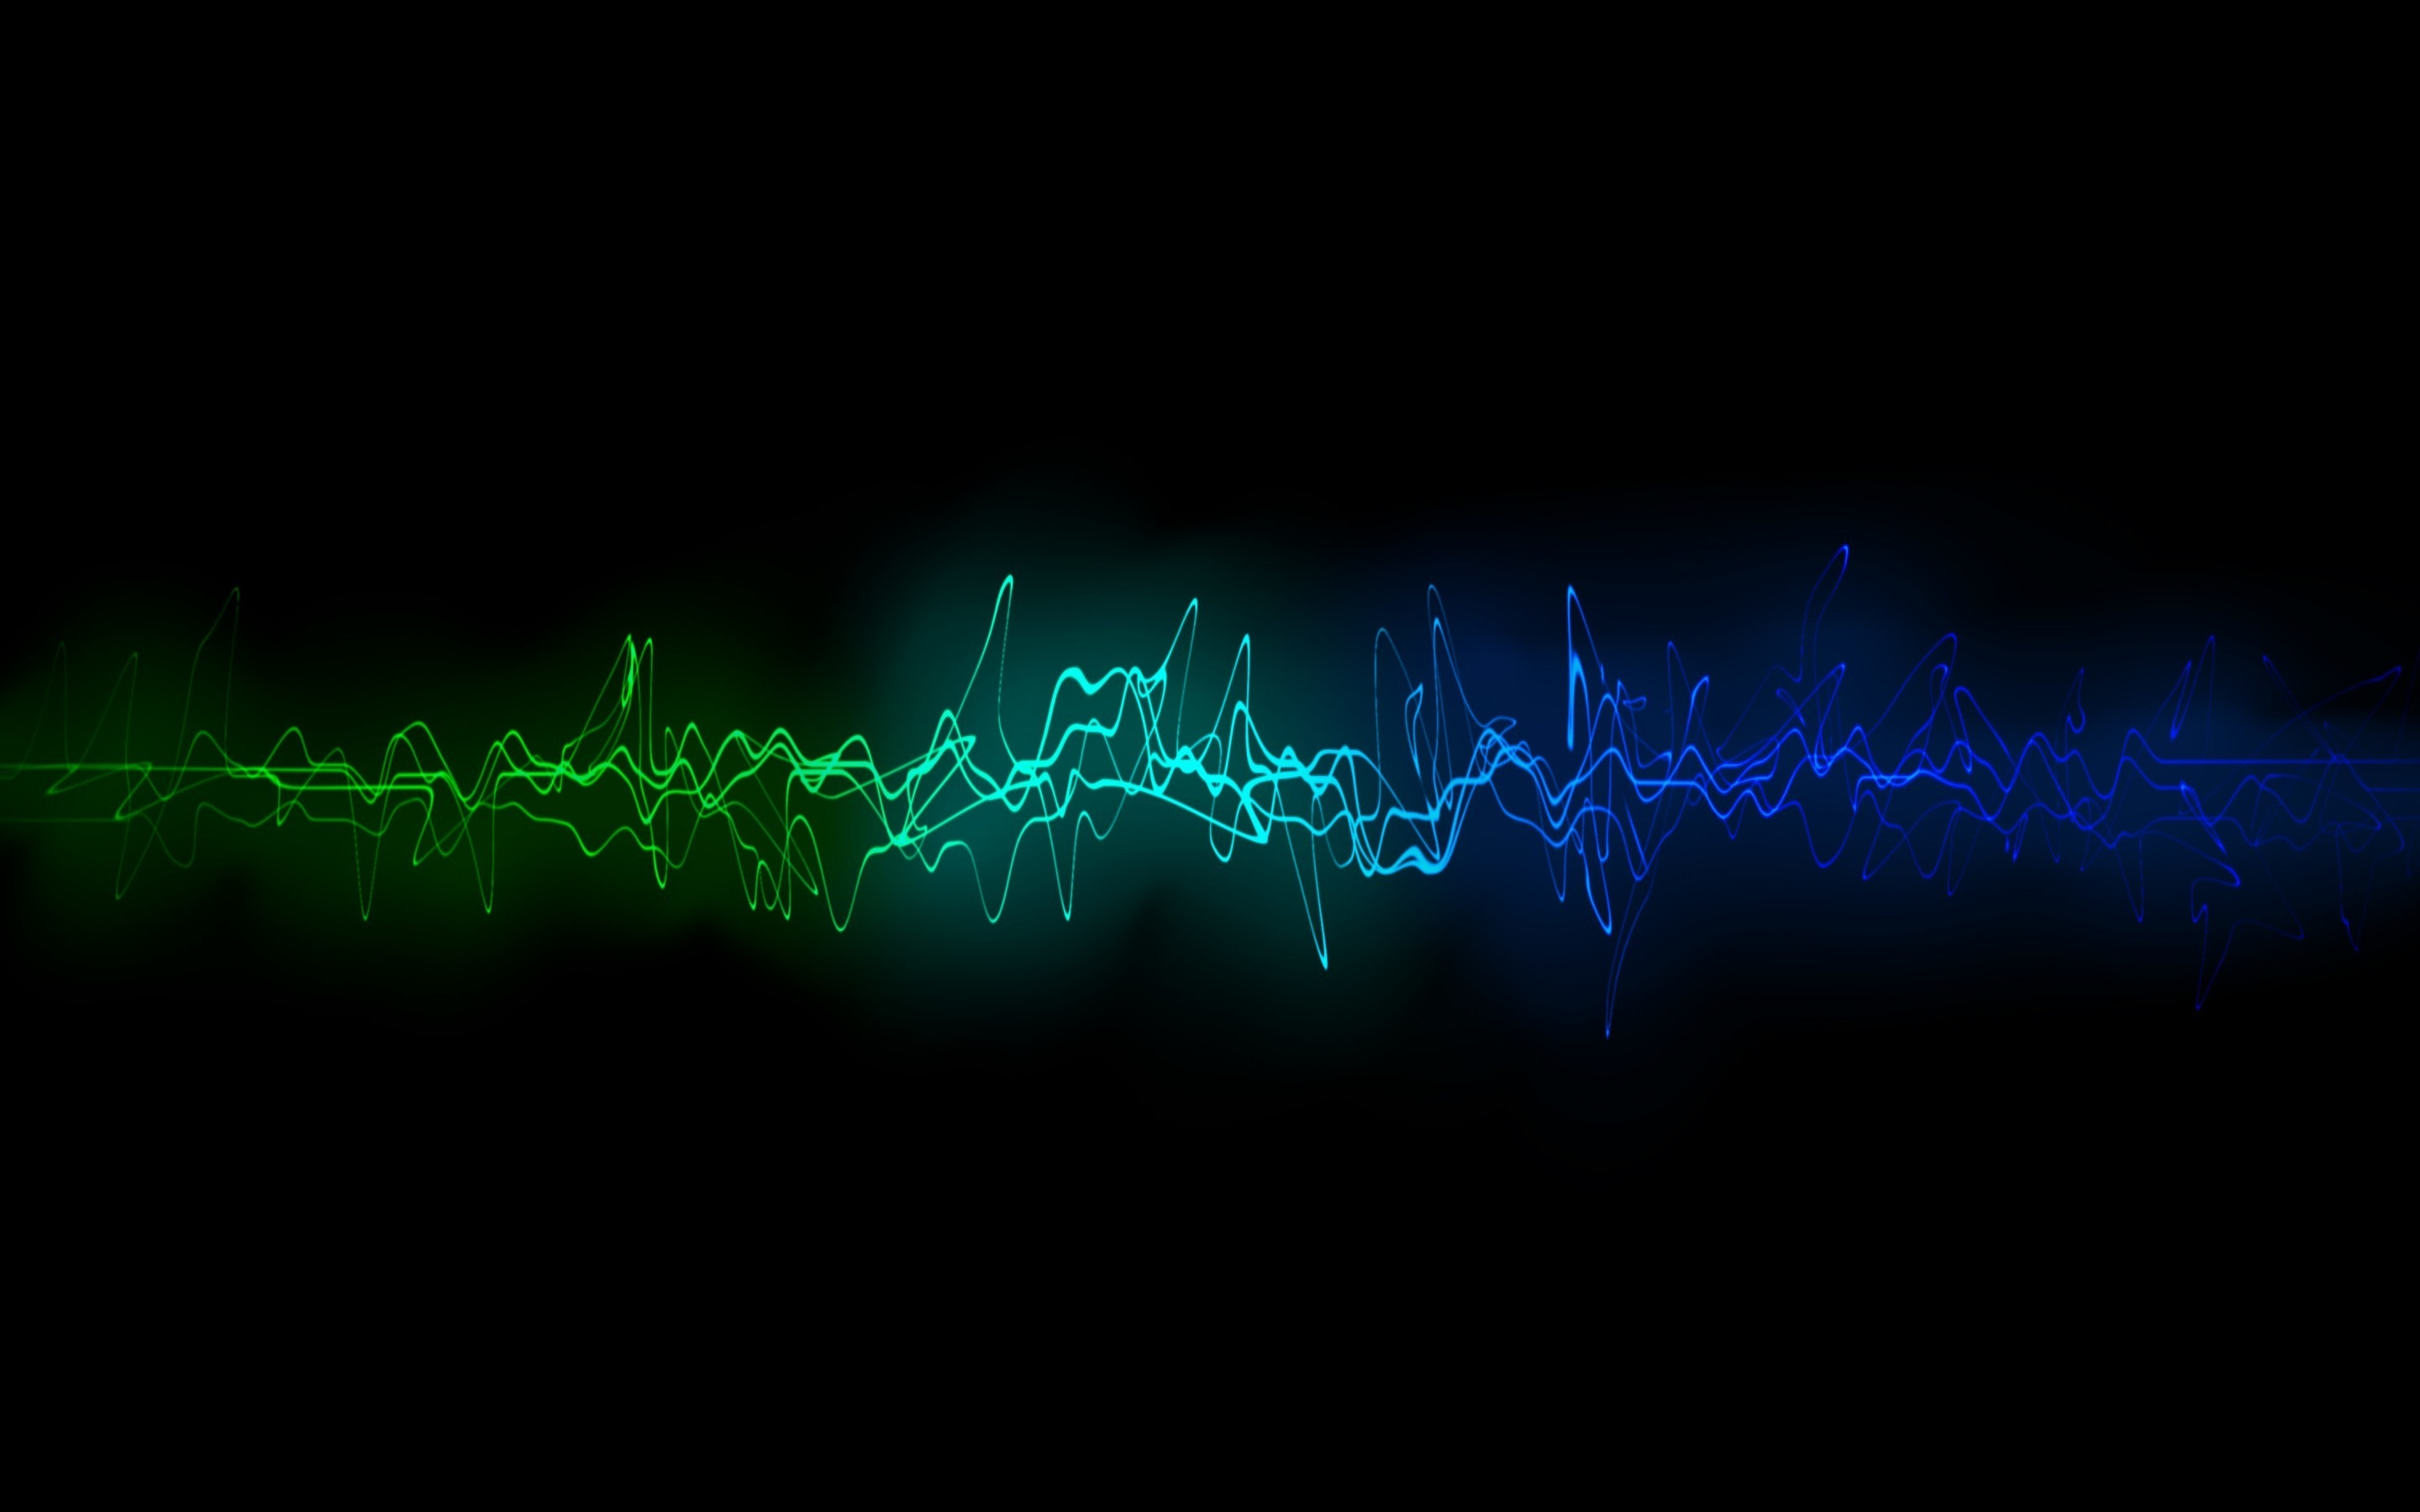 sound wave hd wallpapers - wallpaper.wiki